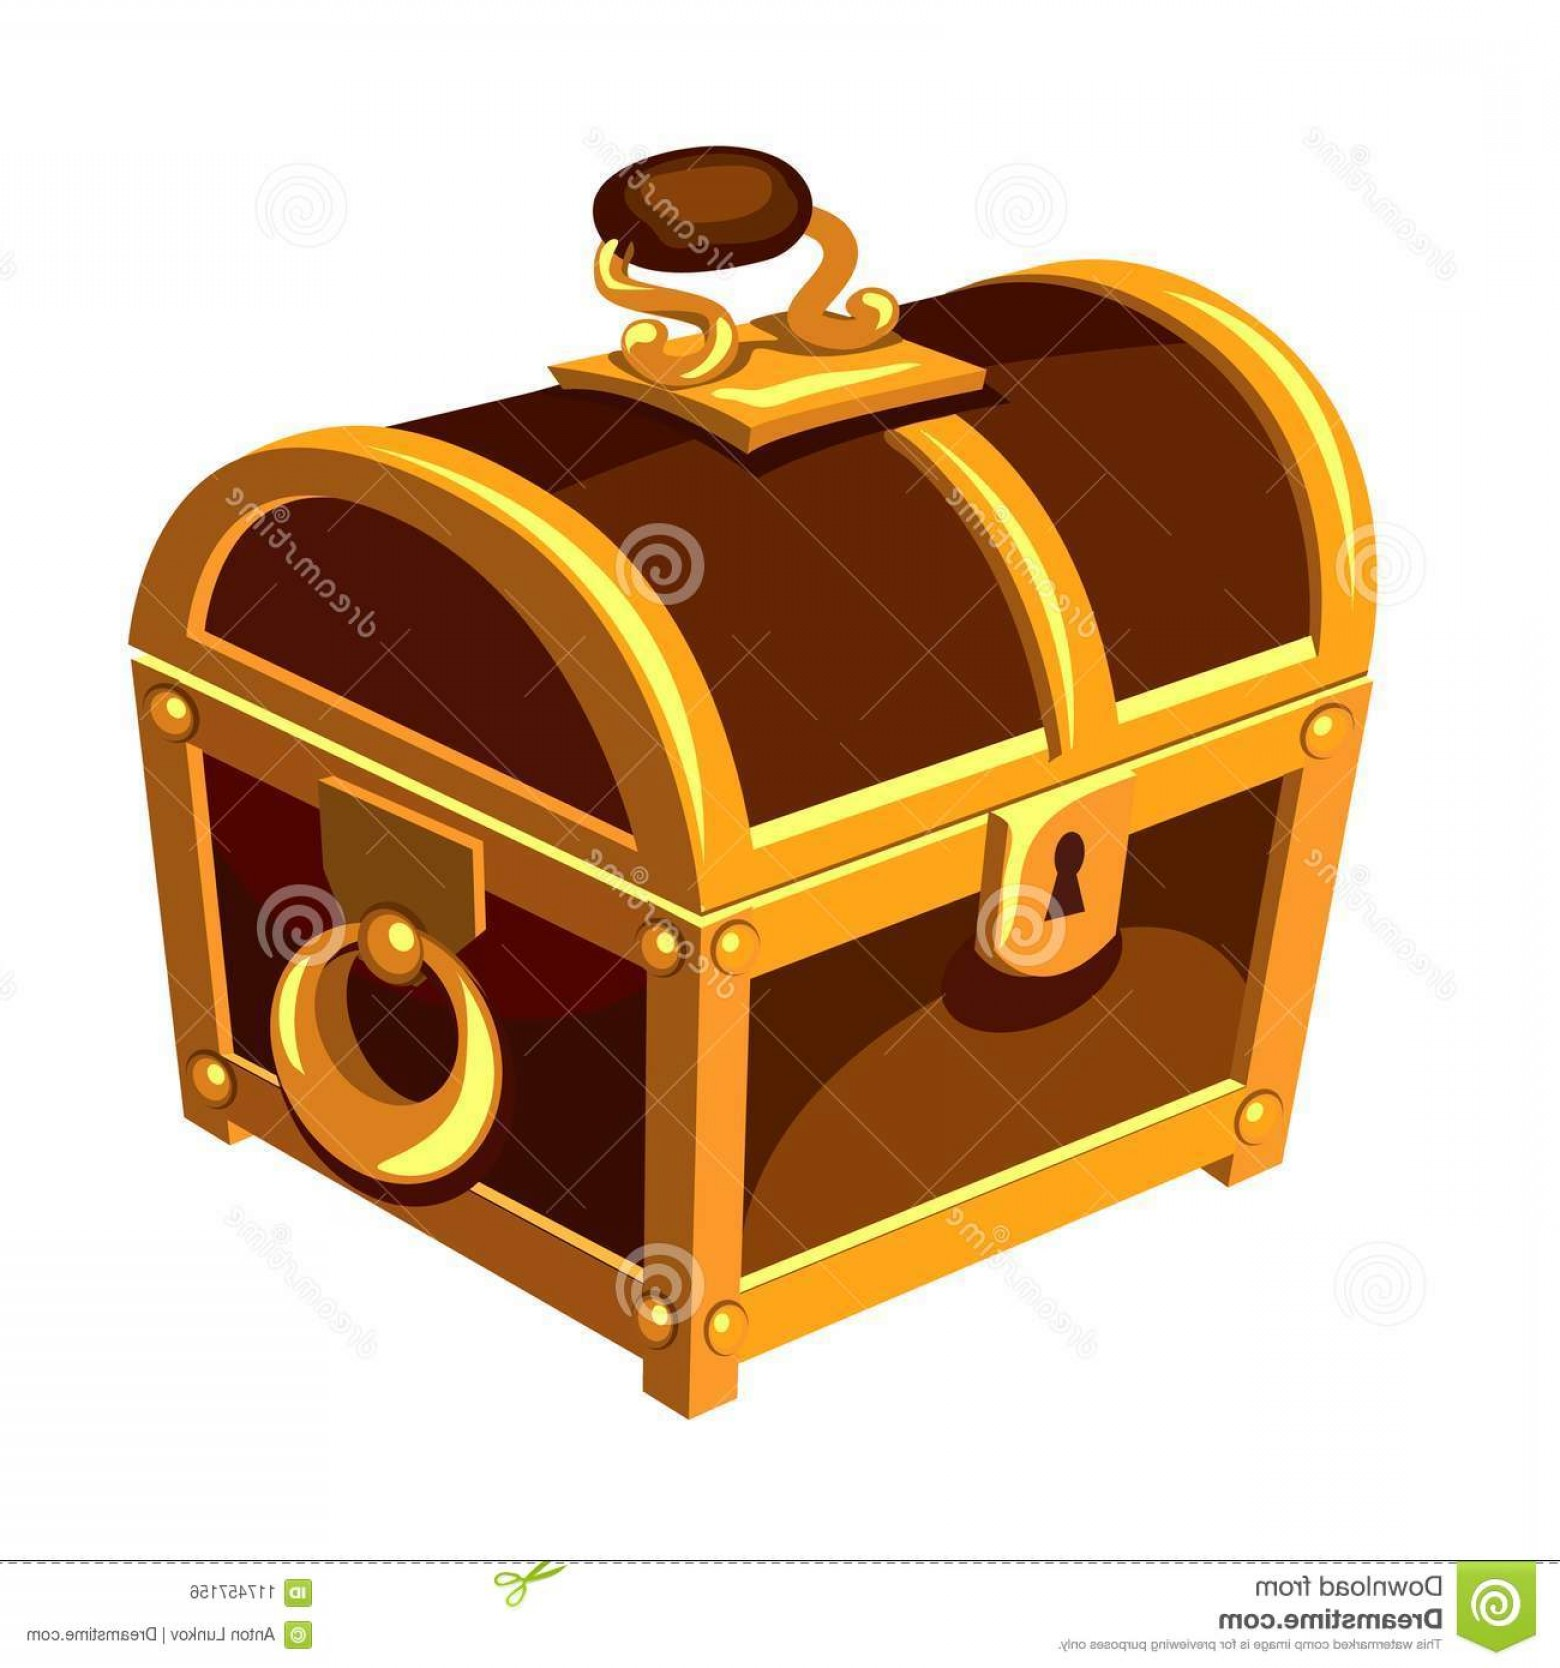 Vector Hinge Western: Vintage Wooden Chest Gold Handle Hinge Isolated White Background Symbol Wealth Well Being Vintage Wooden Chest Image